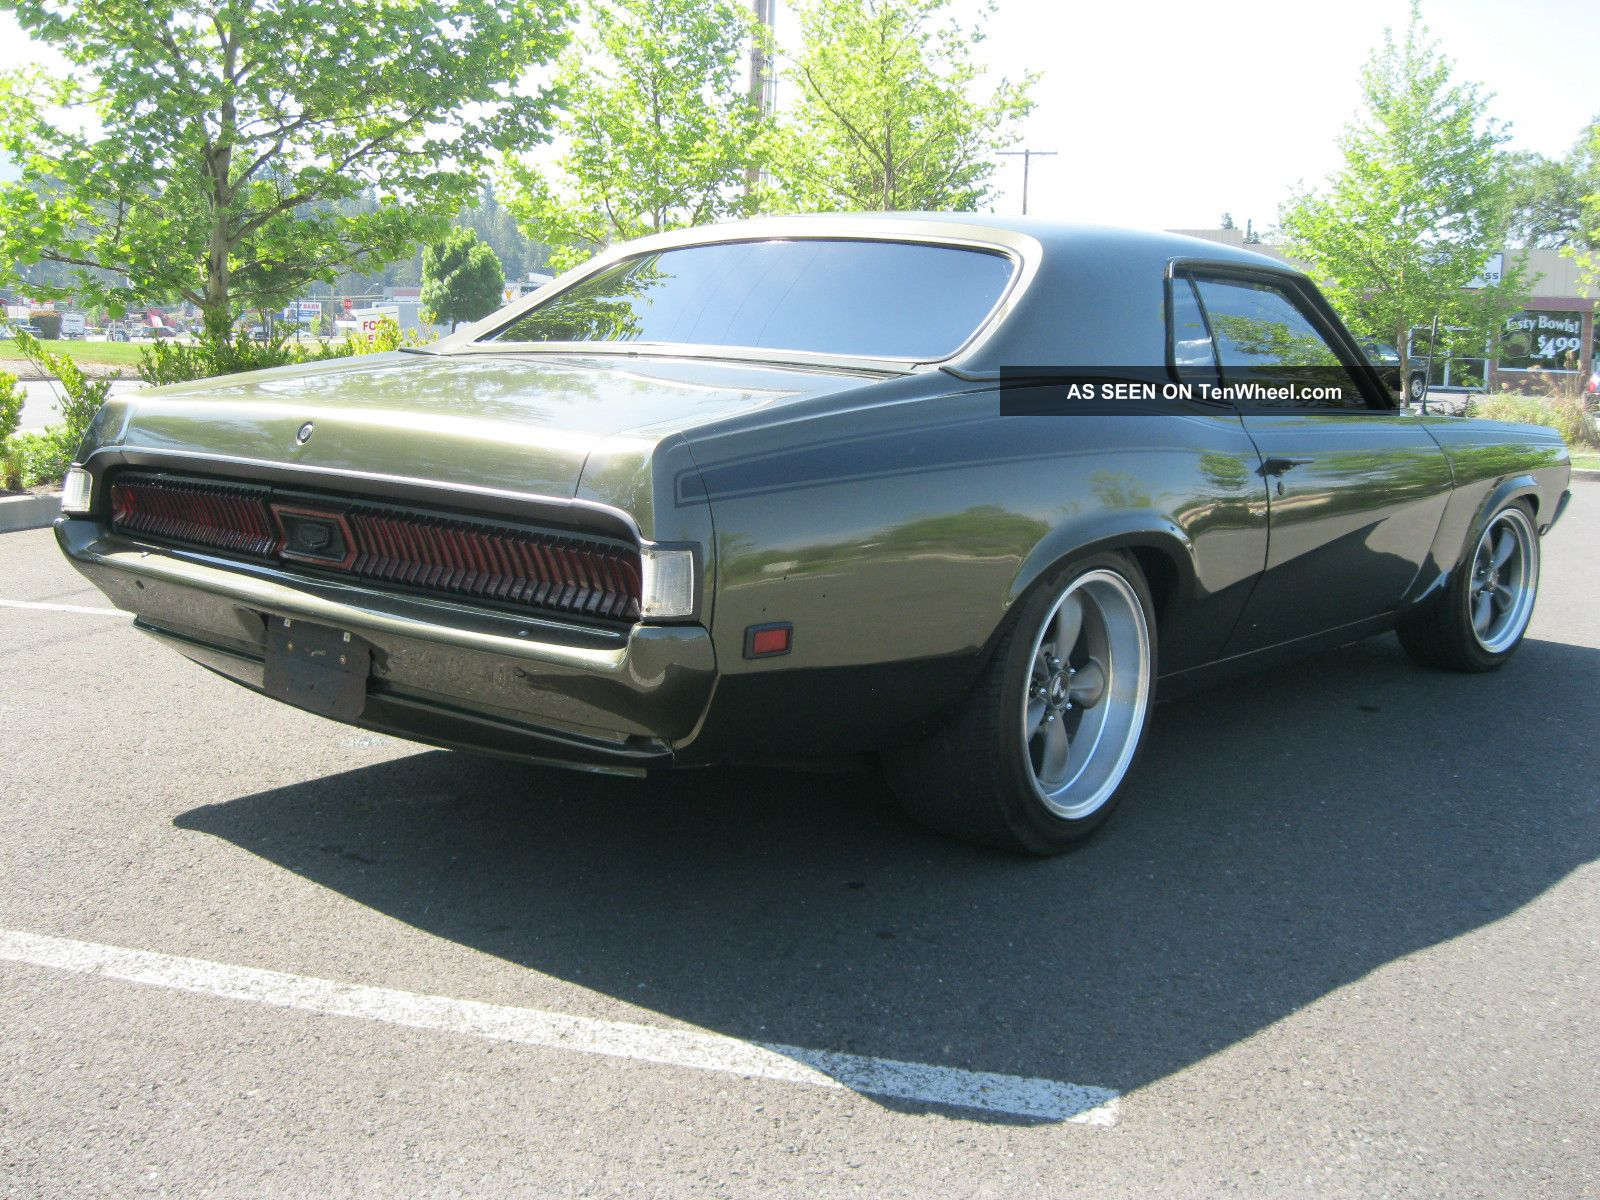 hight resolution of 1969 cougar 1967 1968 1970 mustang camero hotrod muscle car pro touring v8